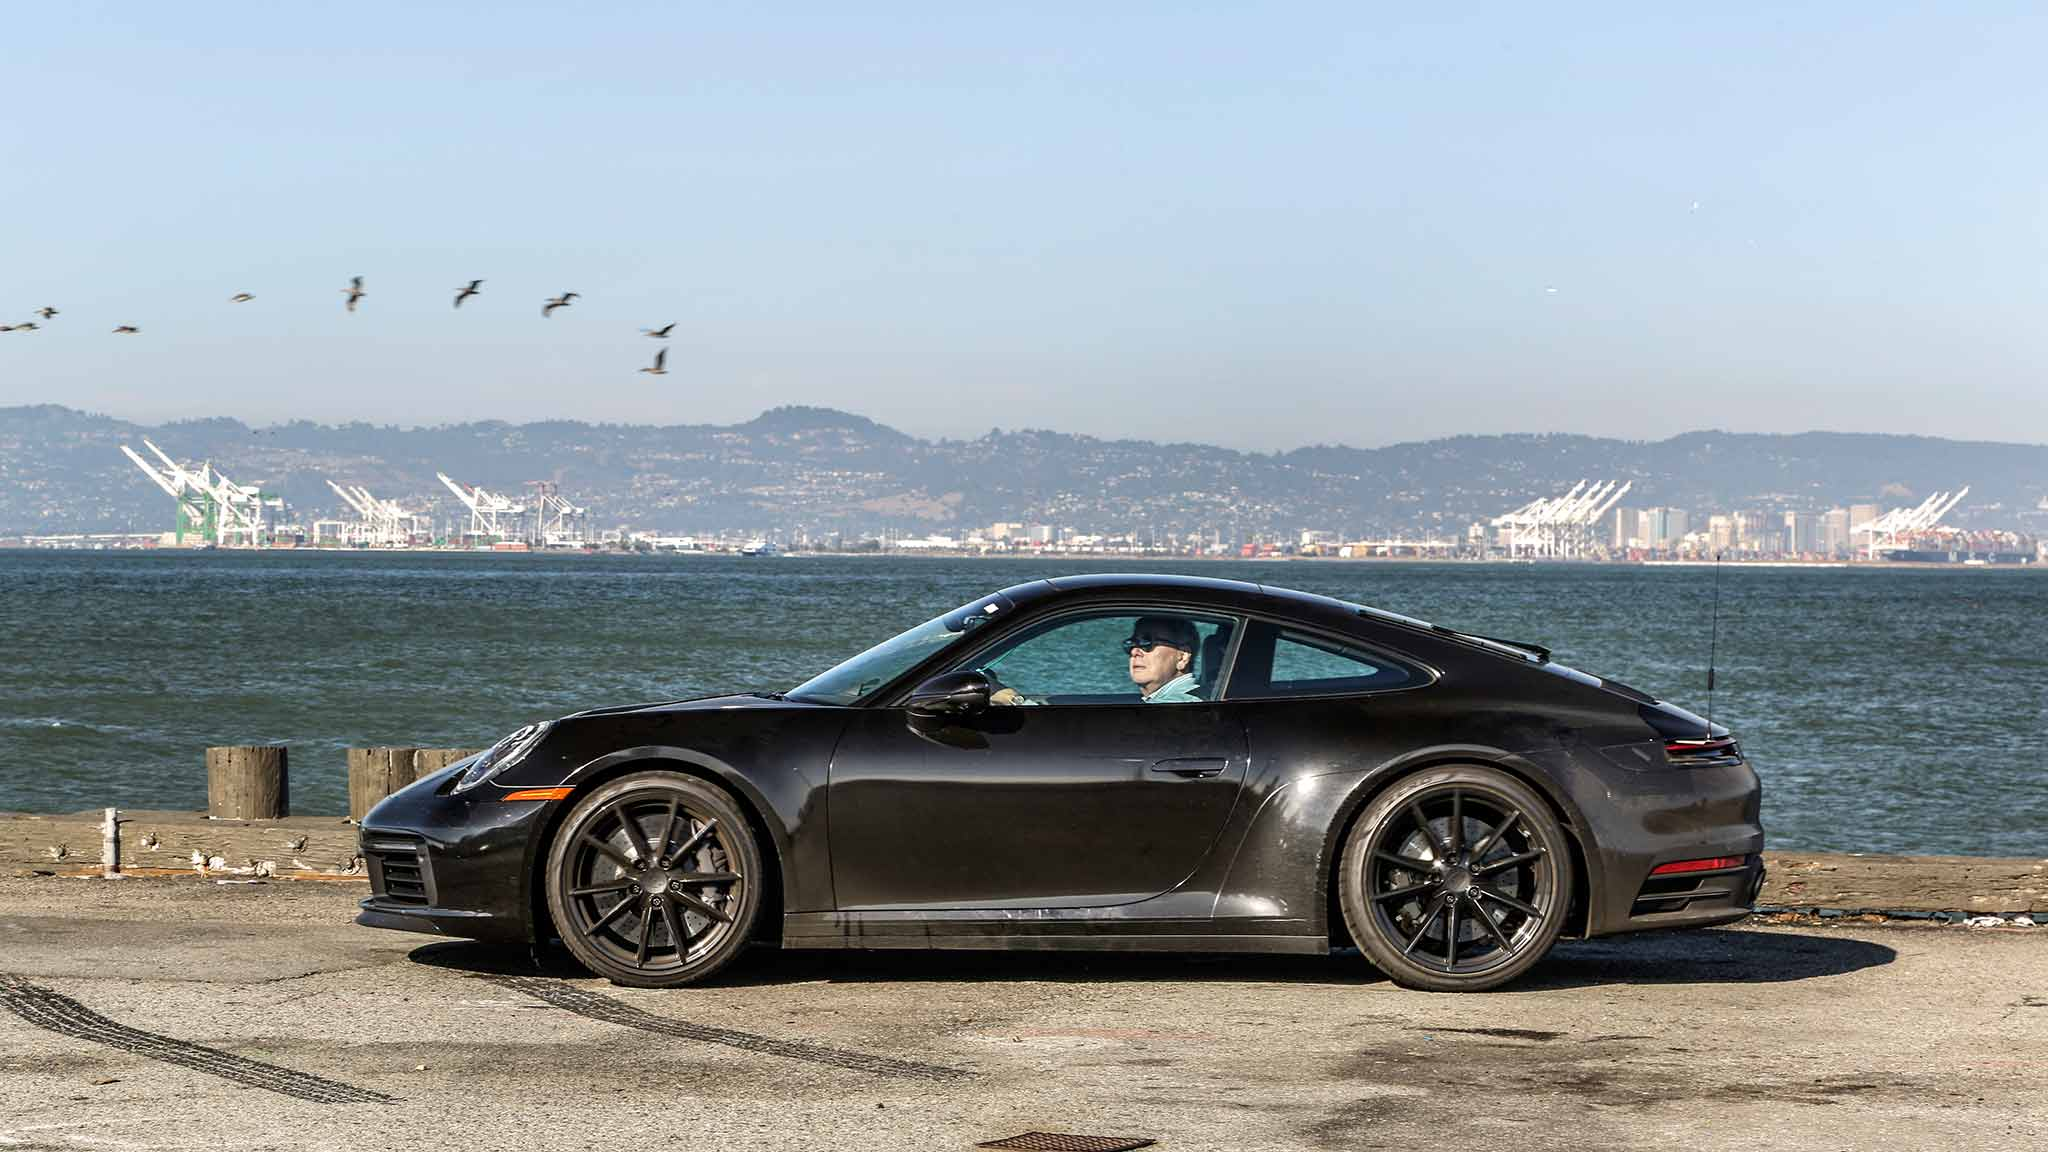 First Automobile Ever Made >> 2020 Porsche 911 Prototype (992 Series) First Drive Review Automobile Magazine